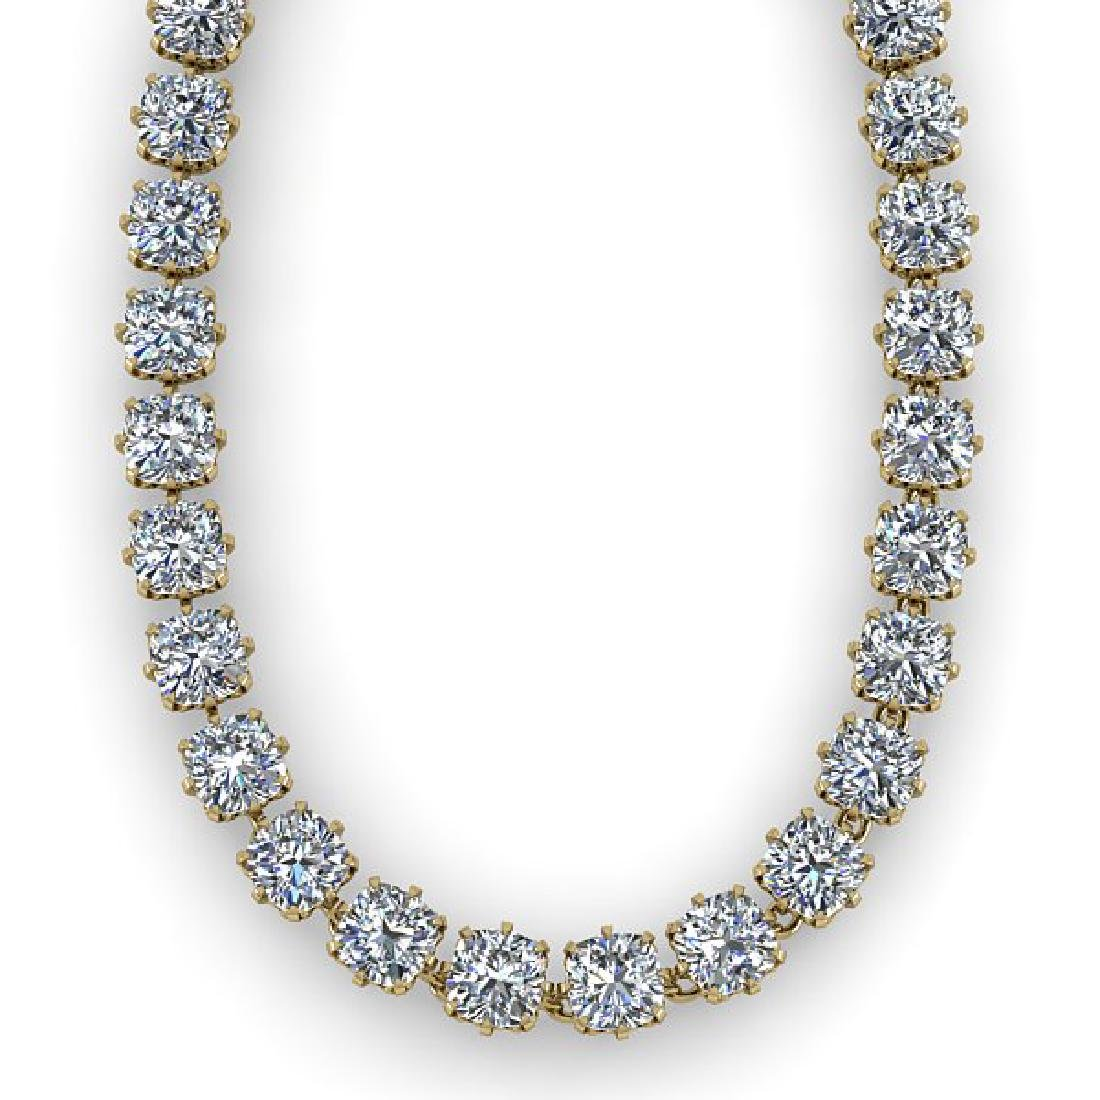 28 CTW Oval Cut SI Certified Diamond Necklace 14K - 2